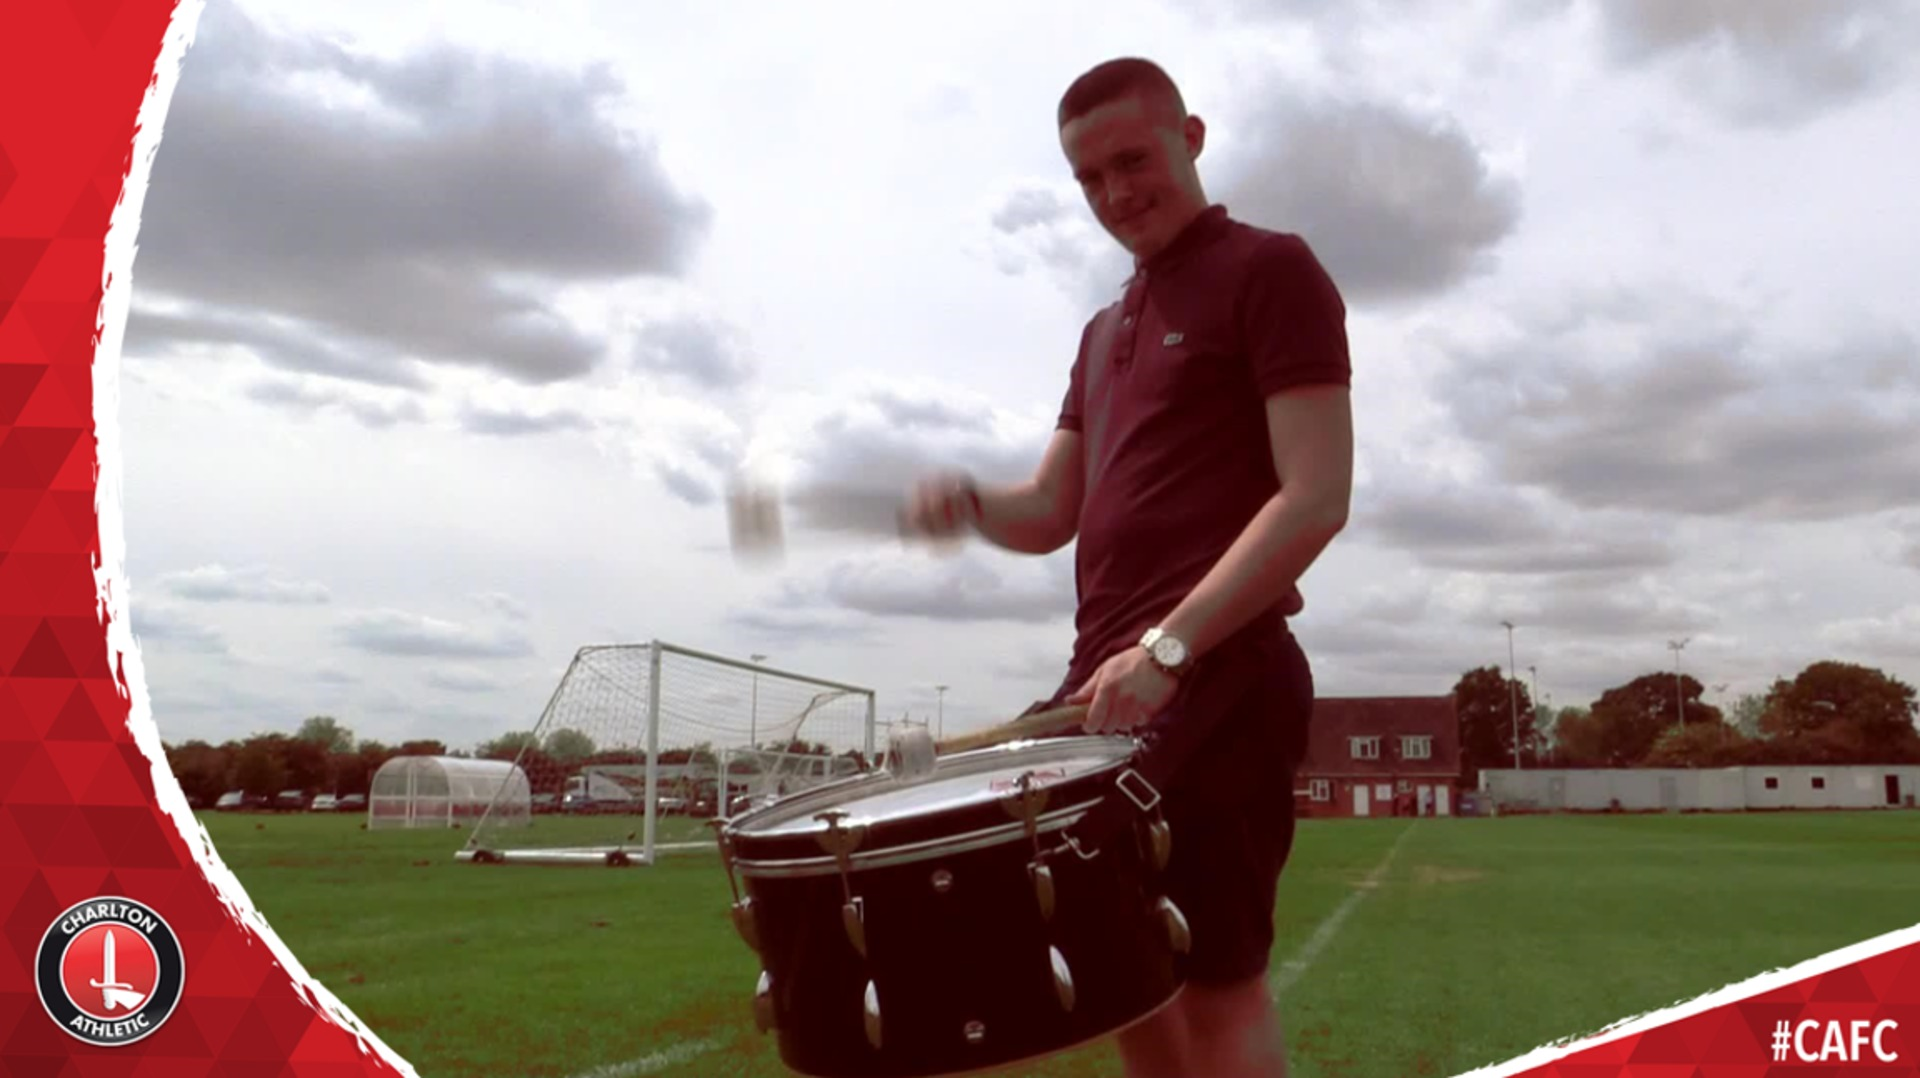 Meet the Covered End drummer